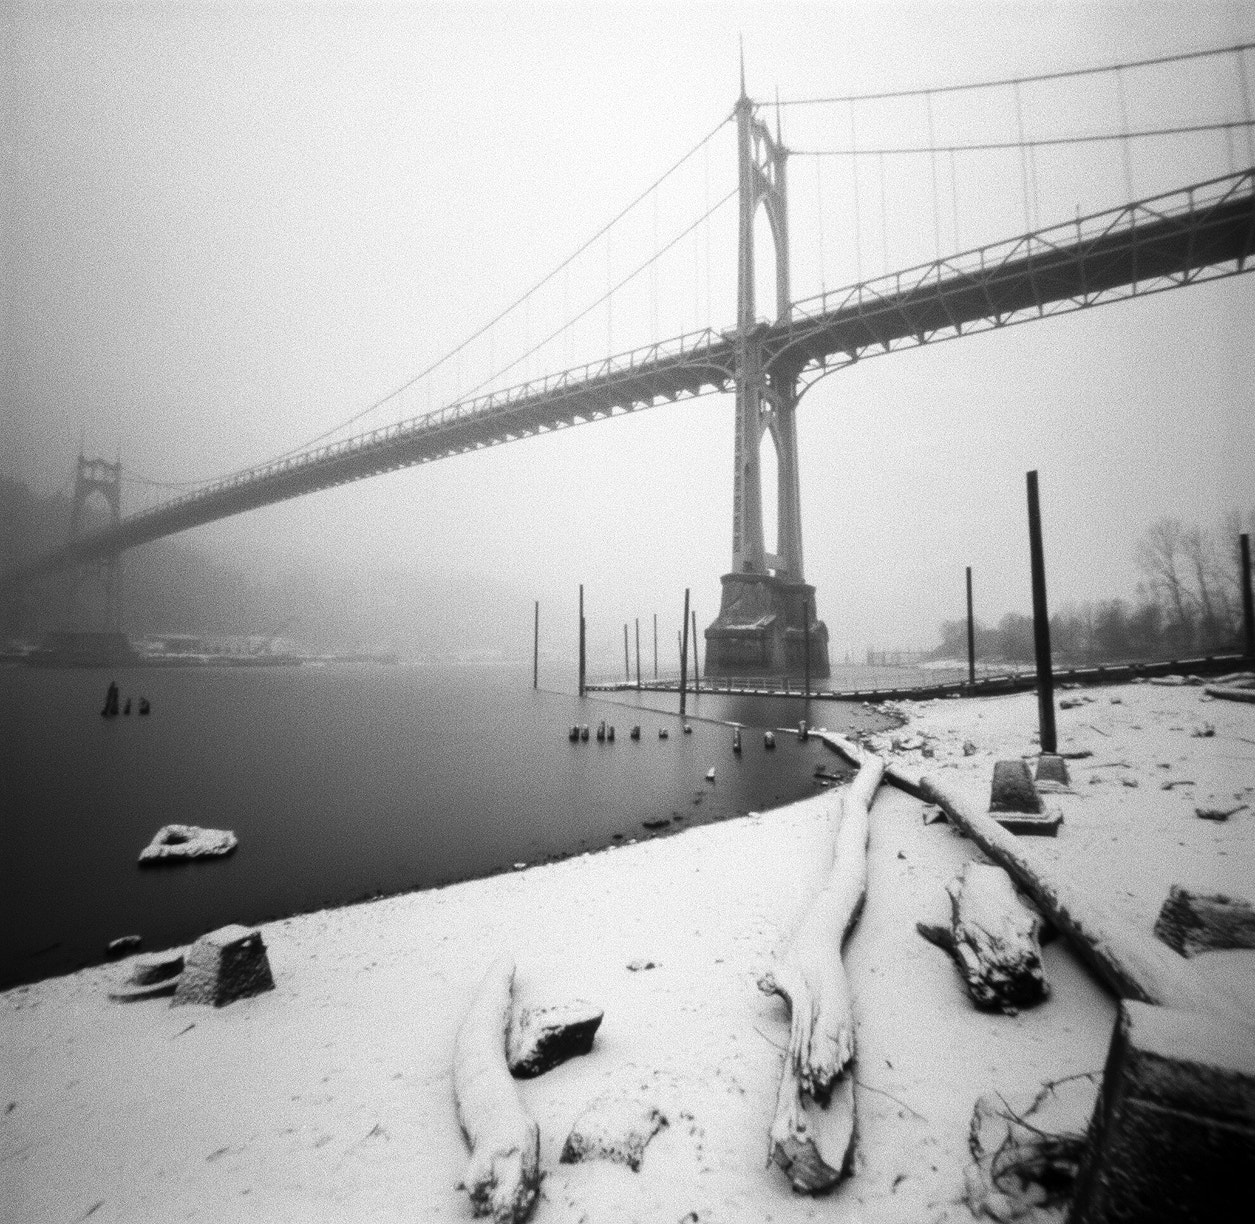 Photograph St. Johns Bridge, snow day by Zeb Andrews on 500px